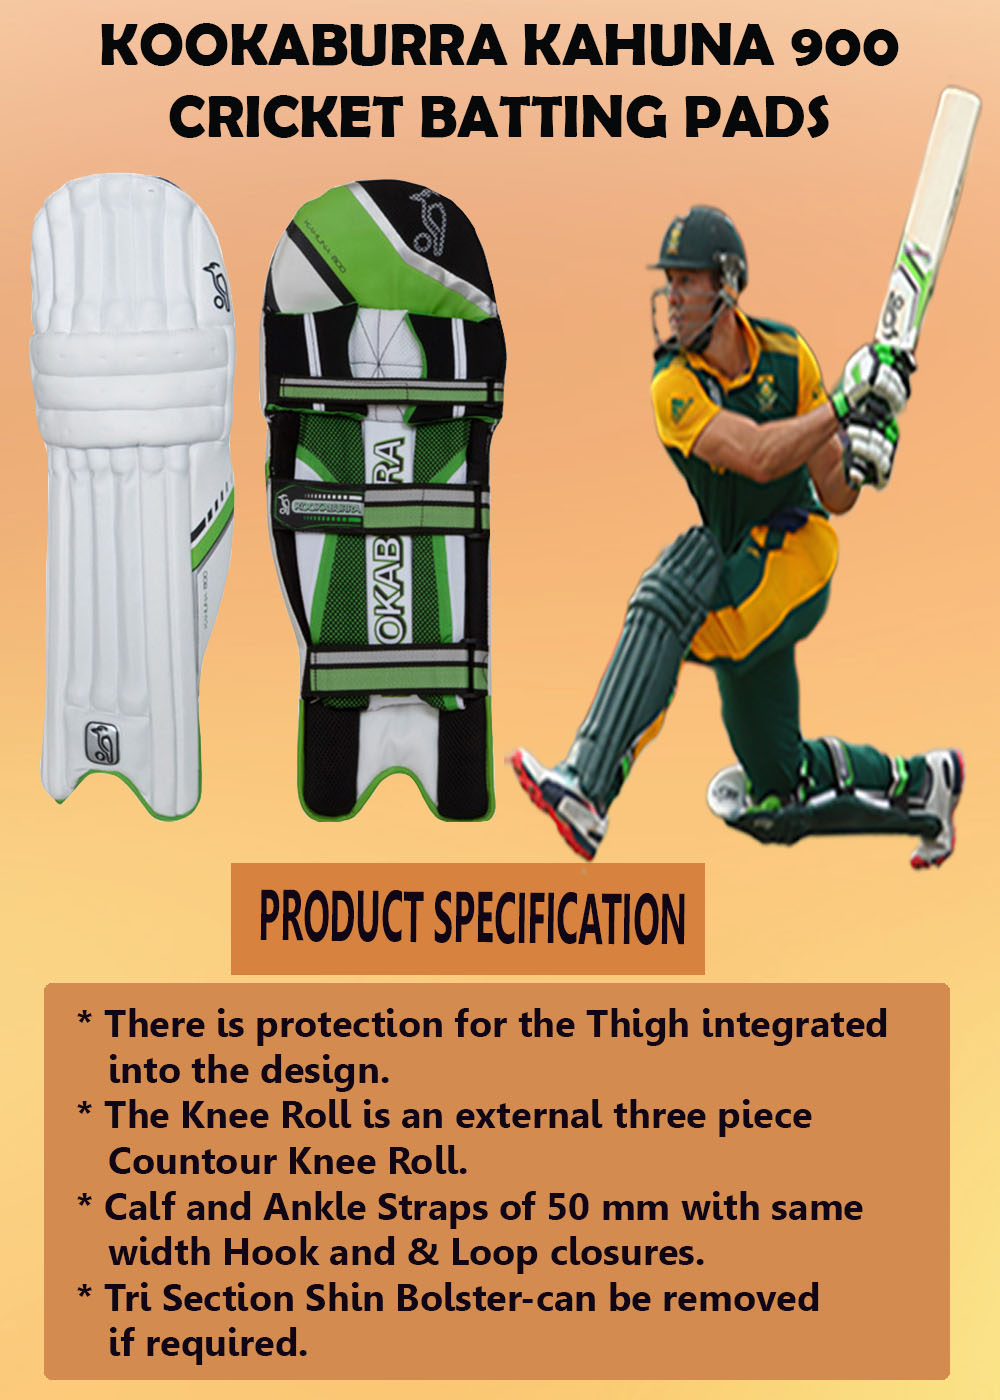 Kookaburra Kahuna 900 Cricket Batting Pads_3